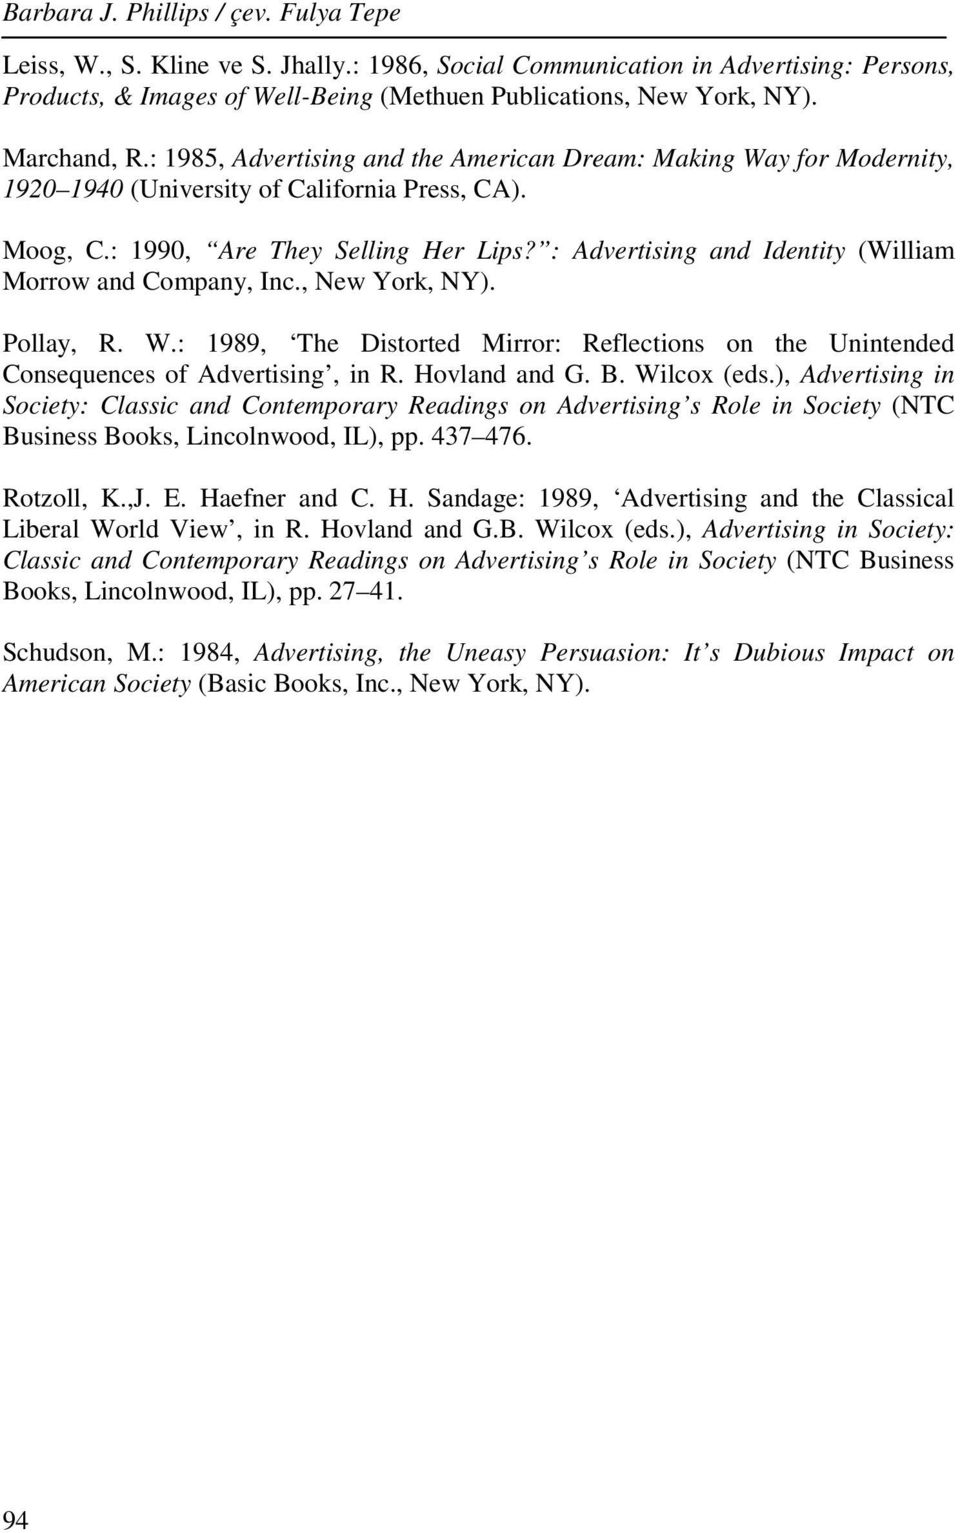 : Advertising and Identity (William Morrow and Company, Inc., New York, NY). Pollay, R. W.: 1989, The Distorted Mirror: Reflections on the Unintended Consequences of Advertising, in R. Hovland and G.